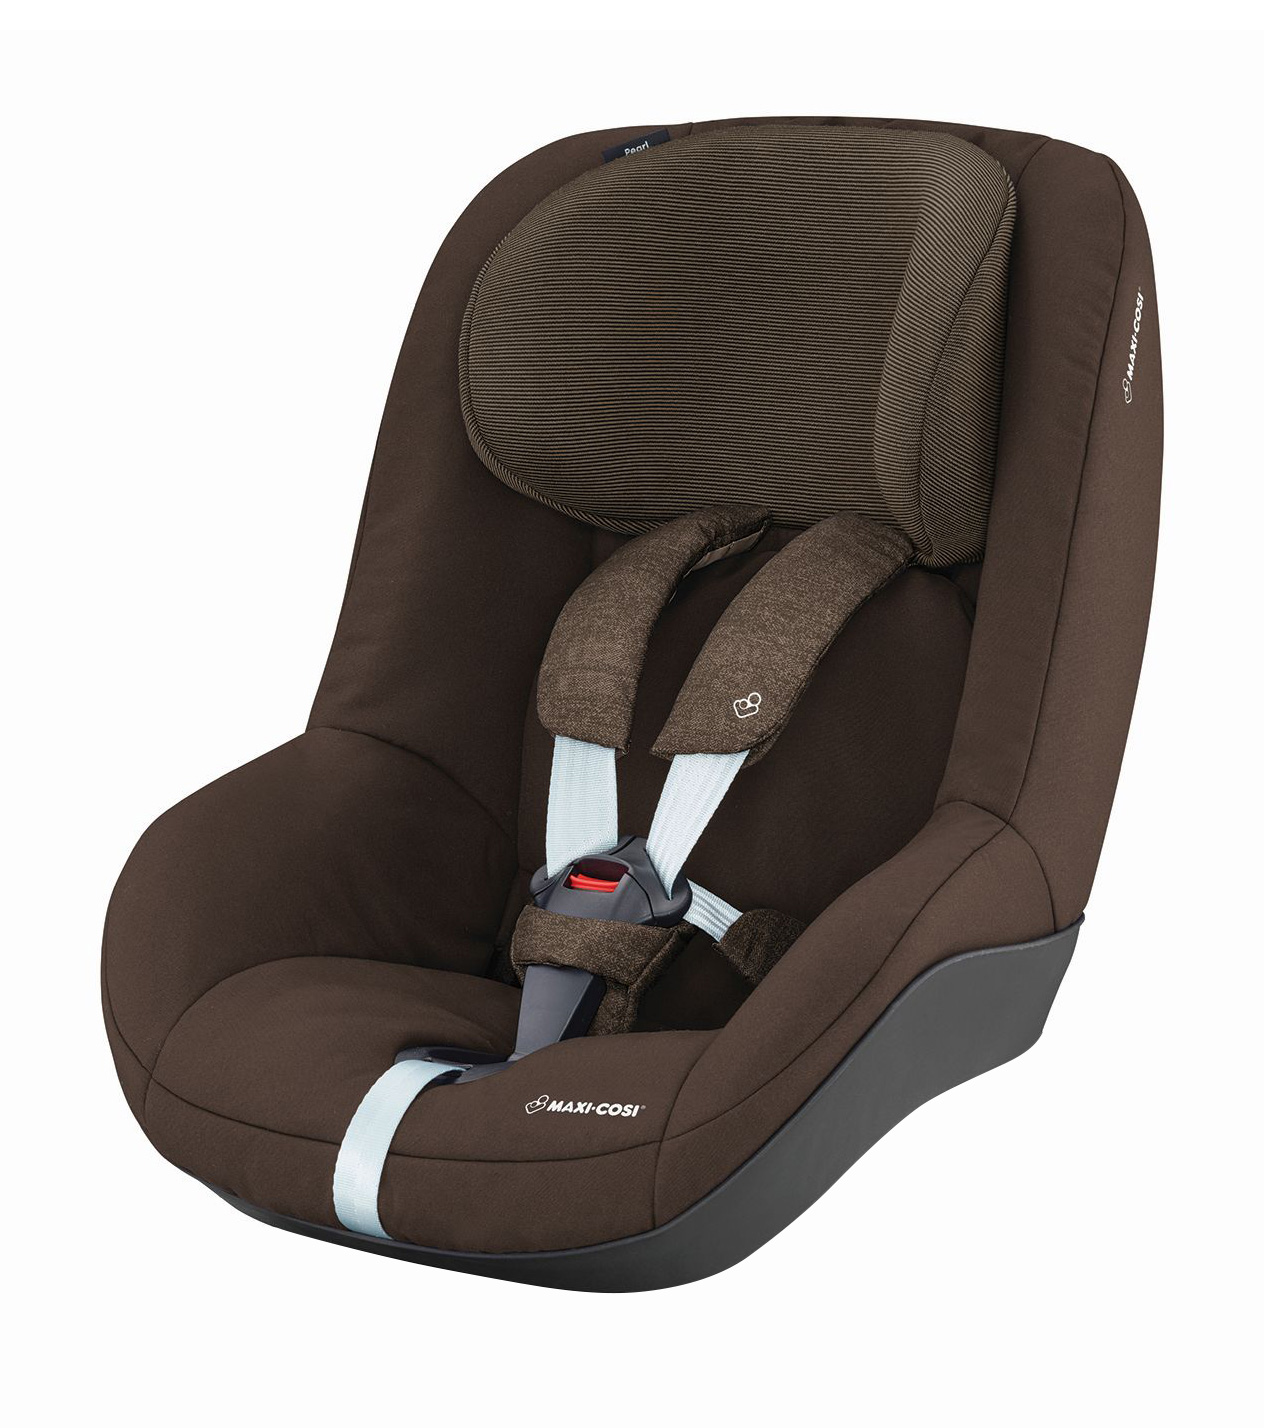 Maxi cosi child car seat pearl 2018 nomad brown buy at for Maxi cosi housse